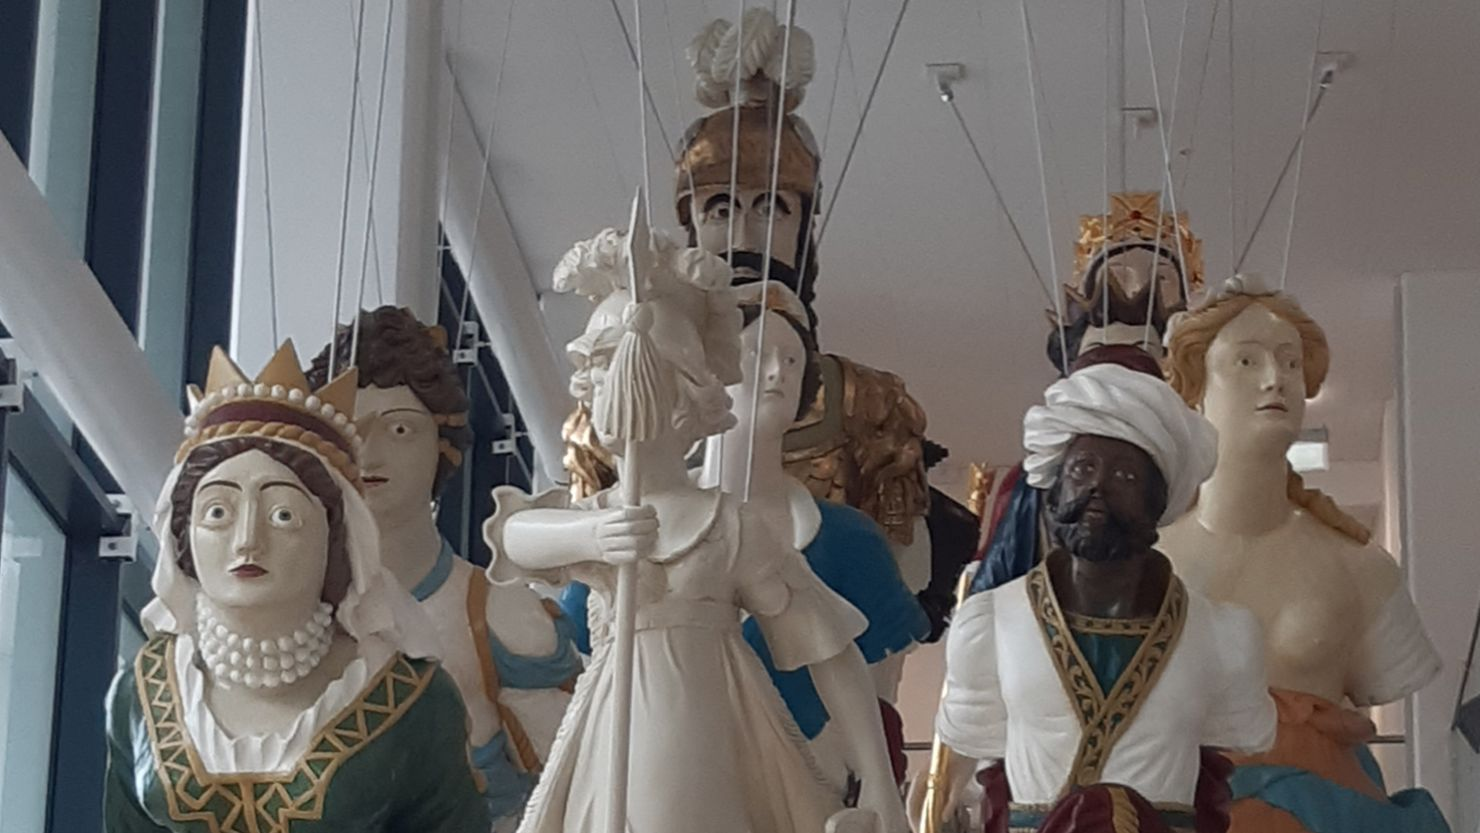 Group of historic ship's figureheads suspended from a ceiling